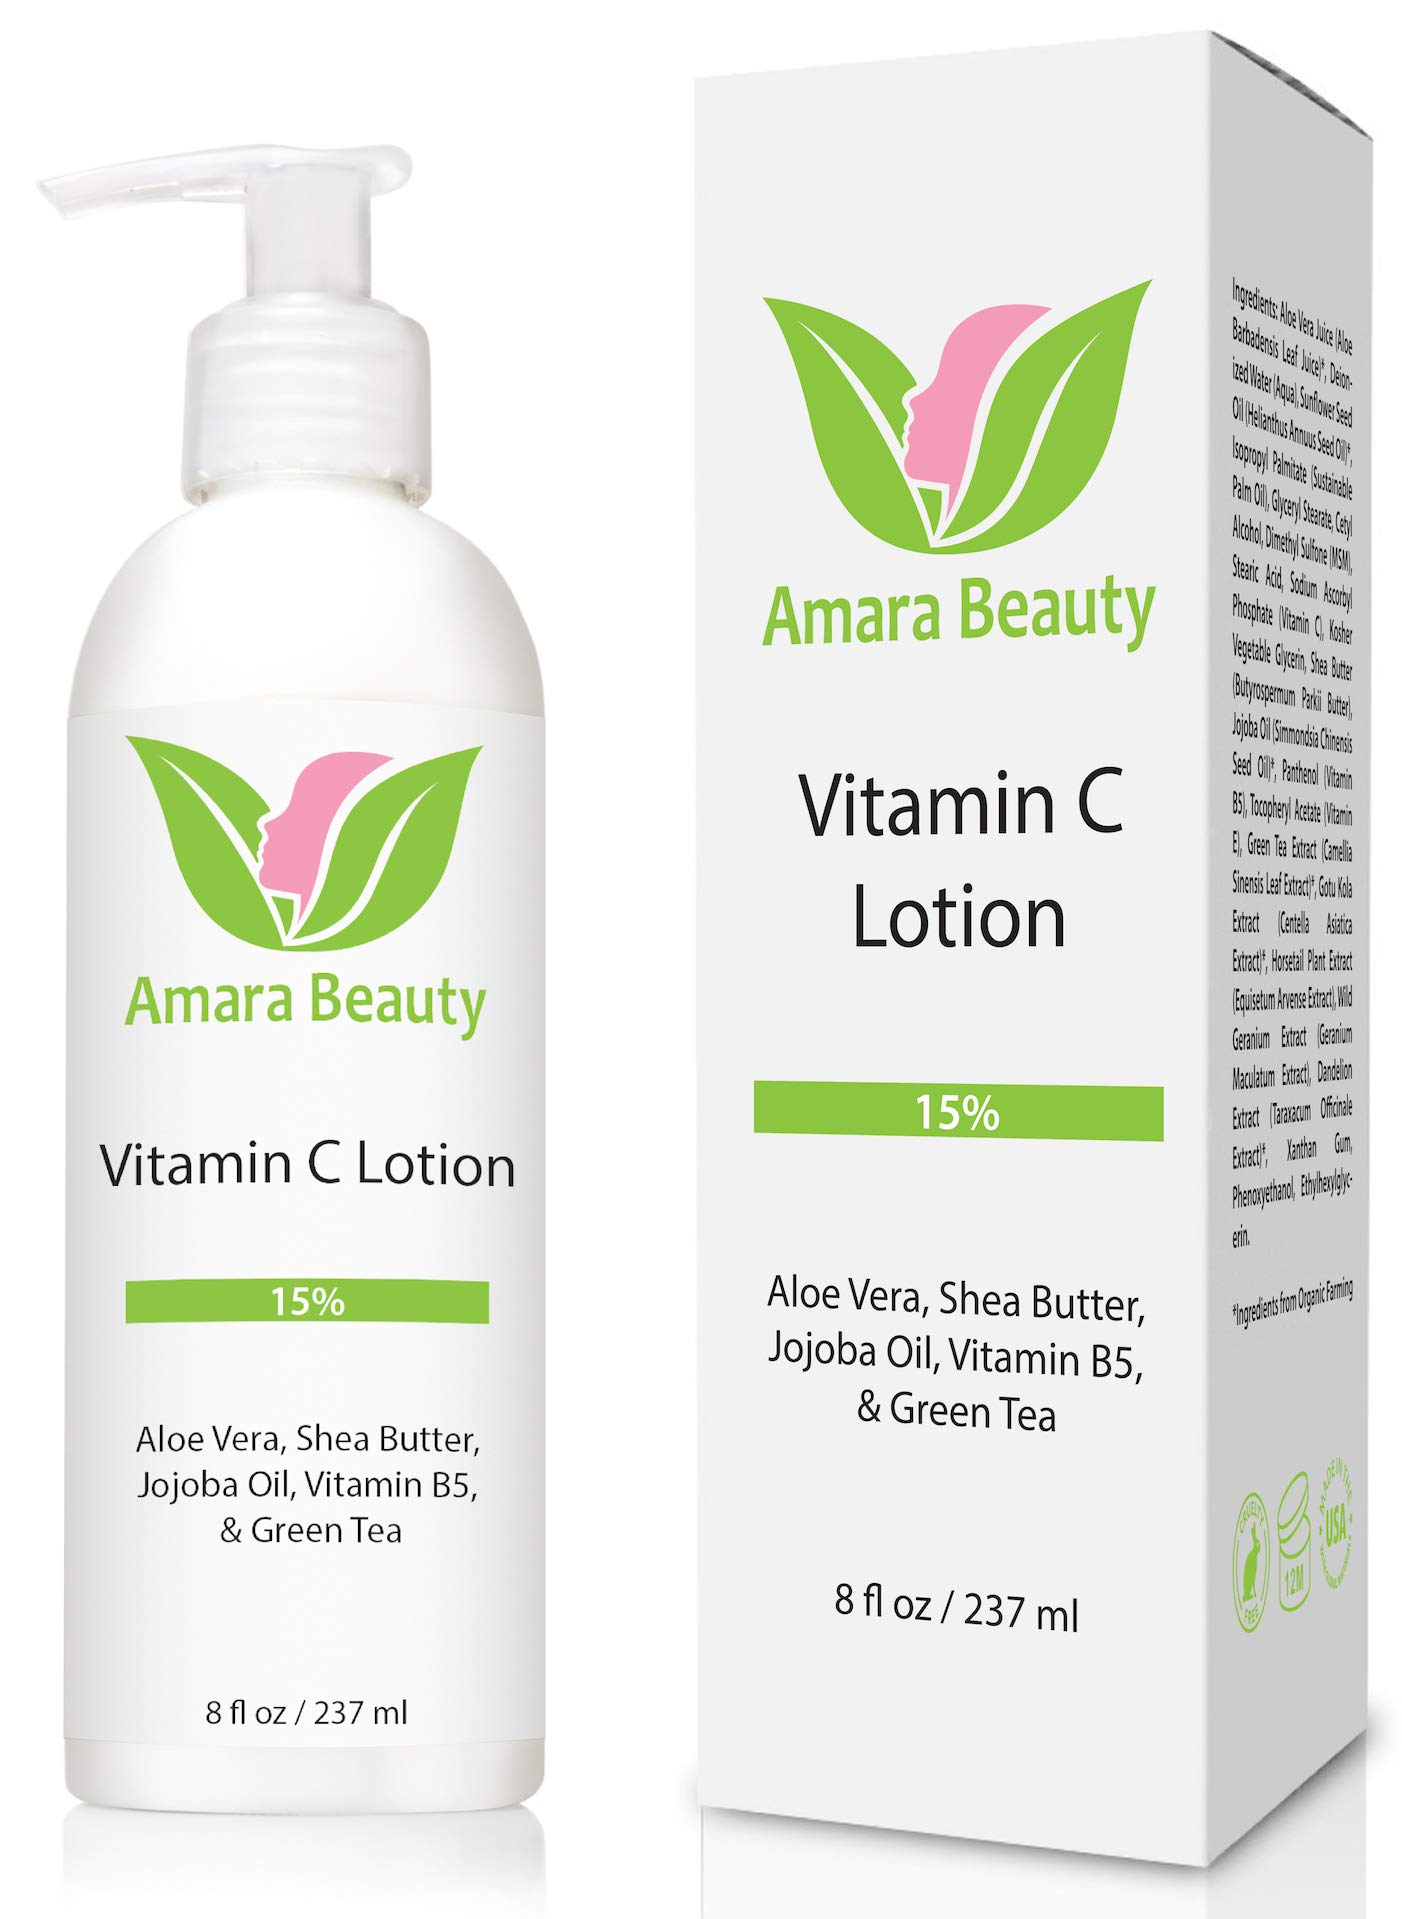 Vitamin C Face & Body Lotion 15% - with Shea Butter & Jojoba Oil - 8 oz by Amara Beauty